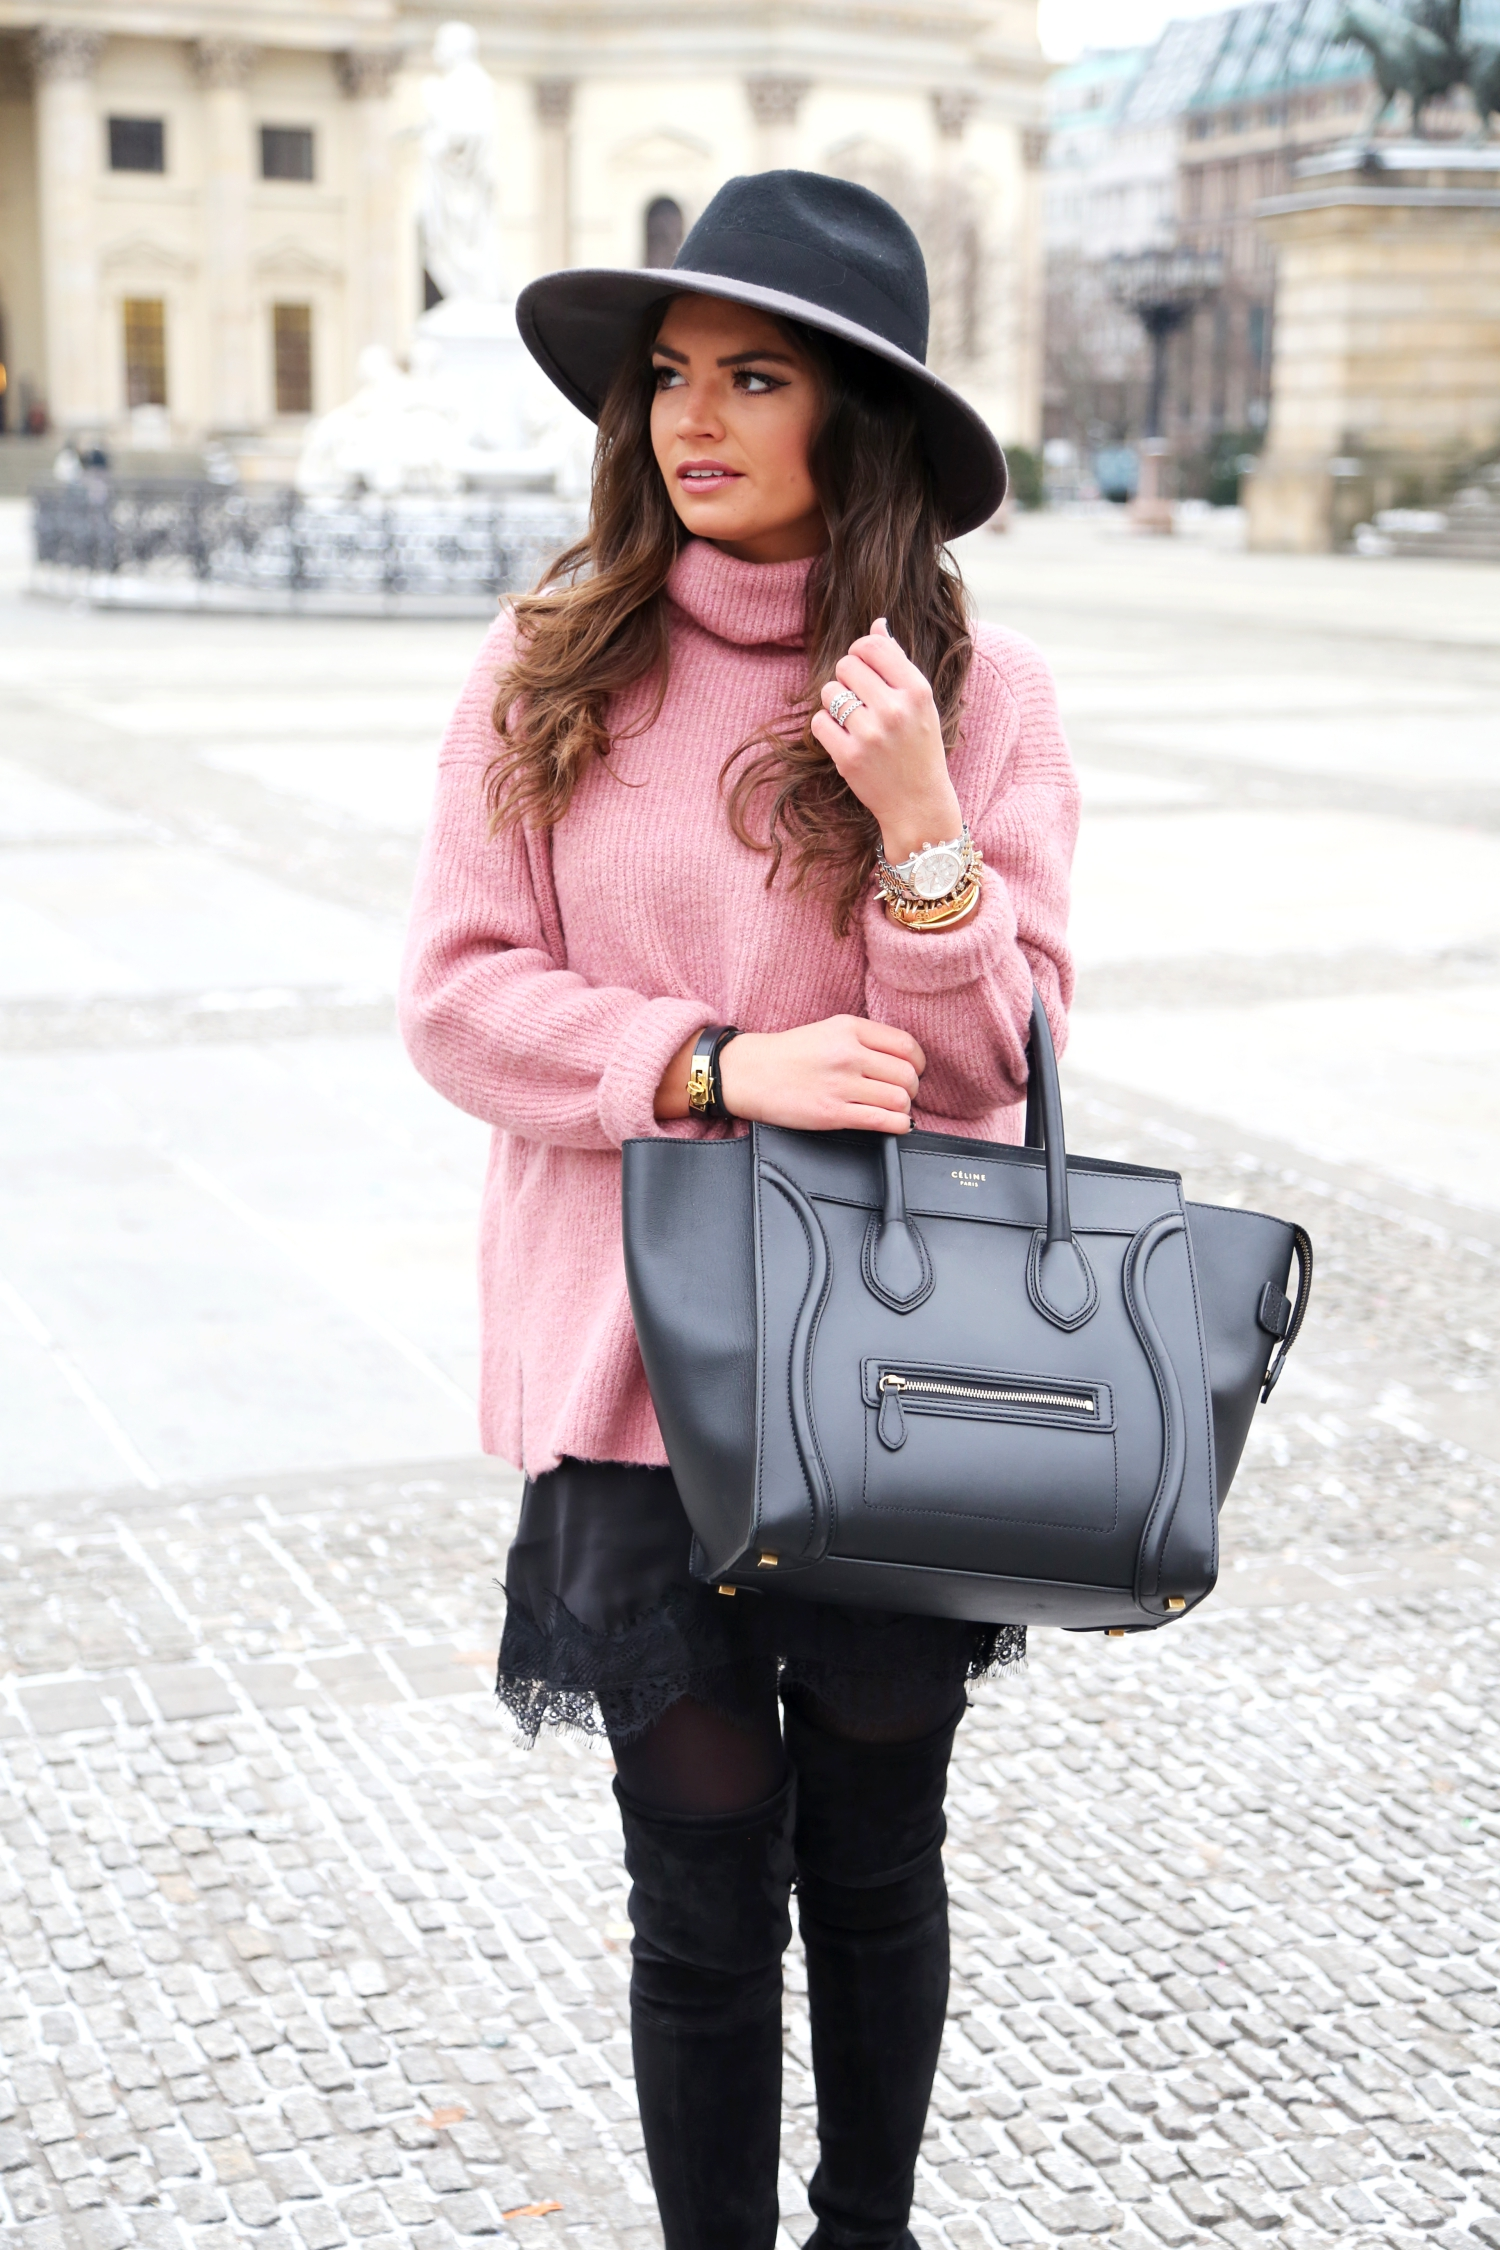 berlin-fashion-week-winter-look-fashionhippieloves-celine-luggage-bag